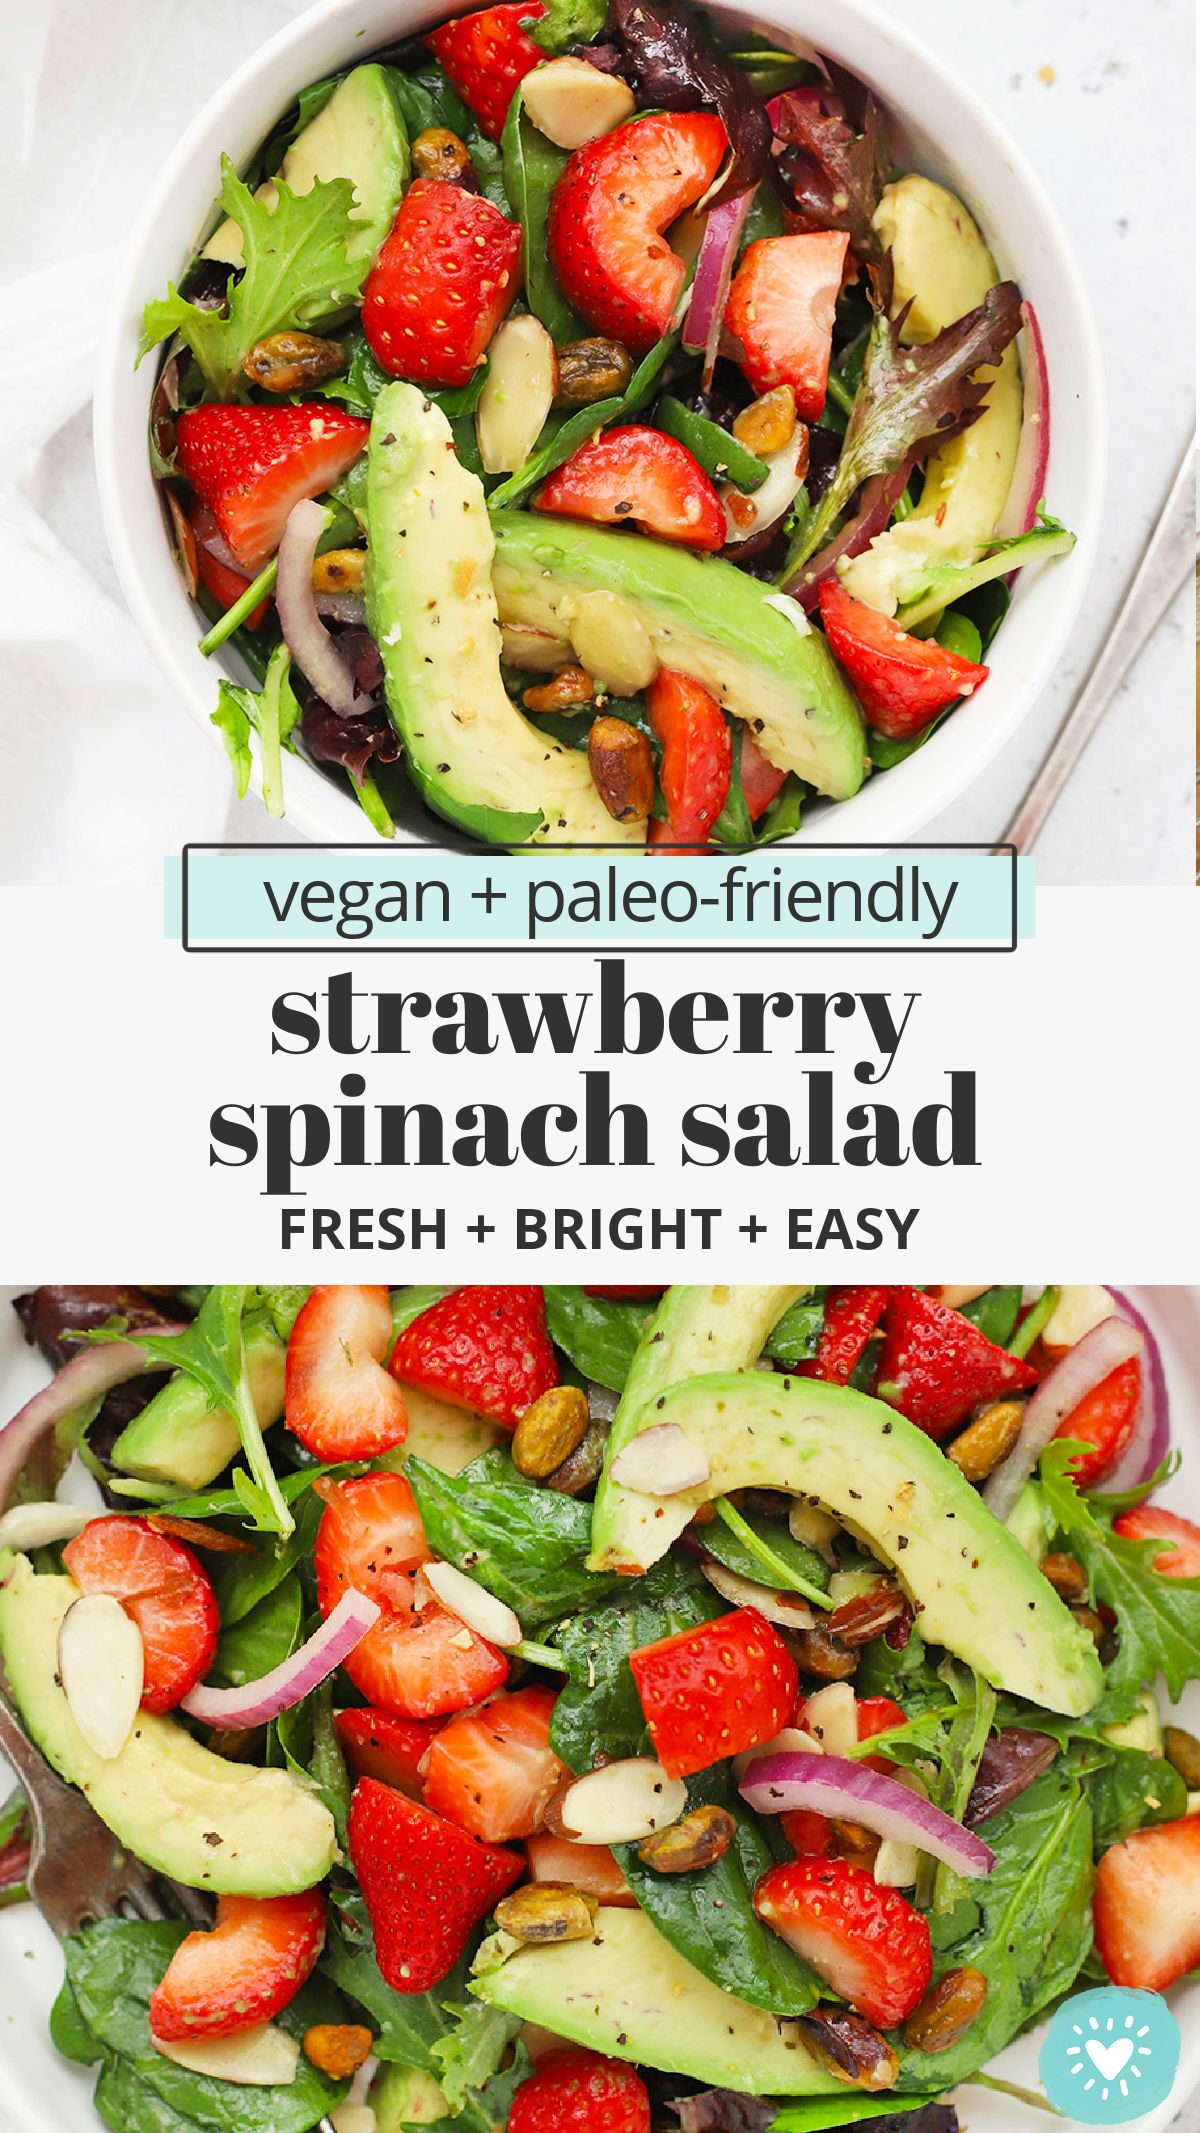 Strawberry Spinach Salad - This strawberry spinach salad recipe is light, bright, and so easy! You'll love the tangy dressing! (Vegan, Paleo) // Paleo Strawberry Spinach Salad // Vegan Strawberry Spinach Salad // Healthy Strawberry Spinach Salad // Gluten-Free Strawberry Spinach Salad // Spring Salad #spinachsalad #salad #strawberry #spring #glutenfree #vegan #paleo